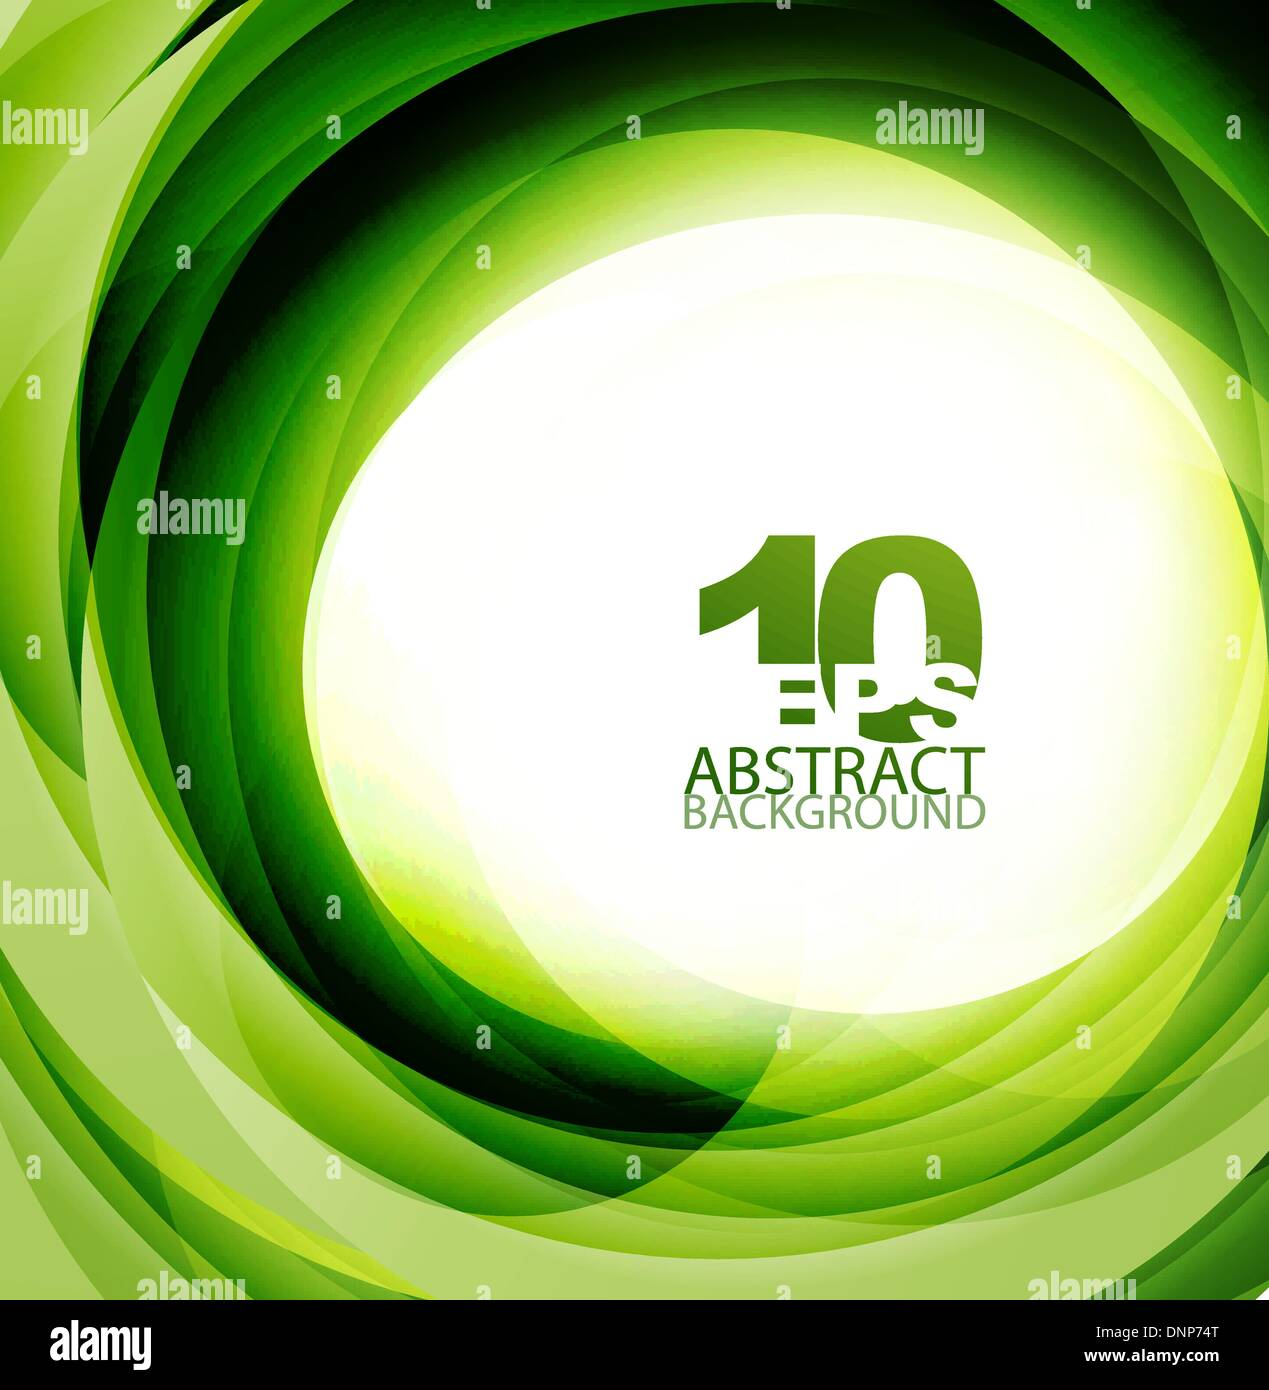 Vector green eco swirl abstract background - Stock Image